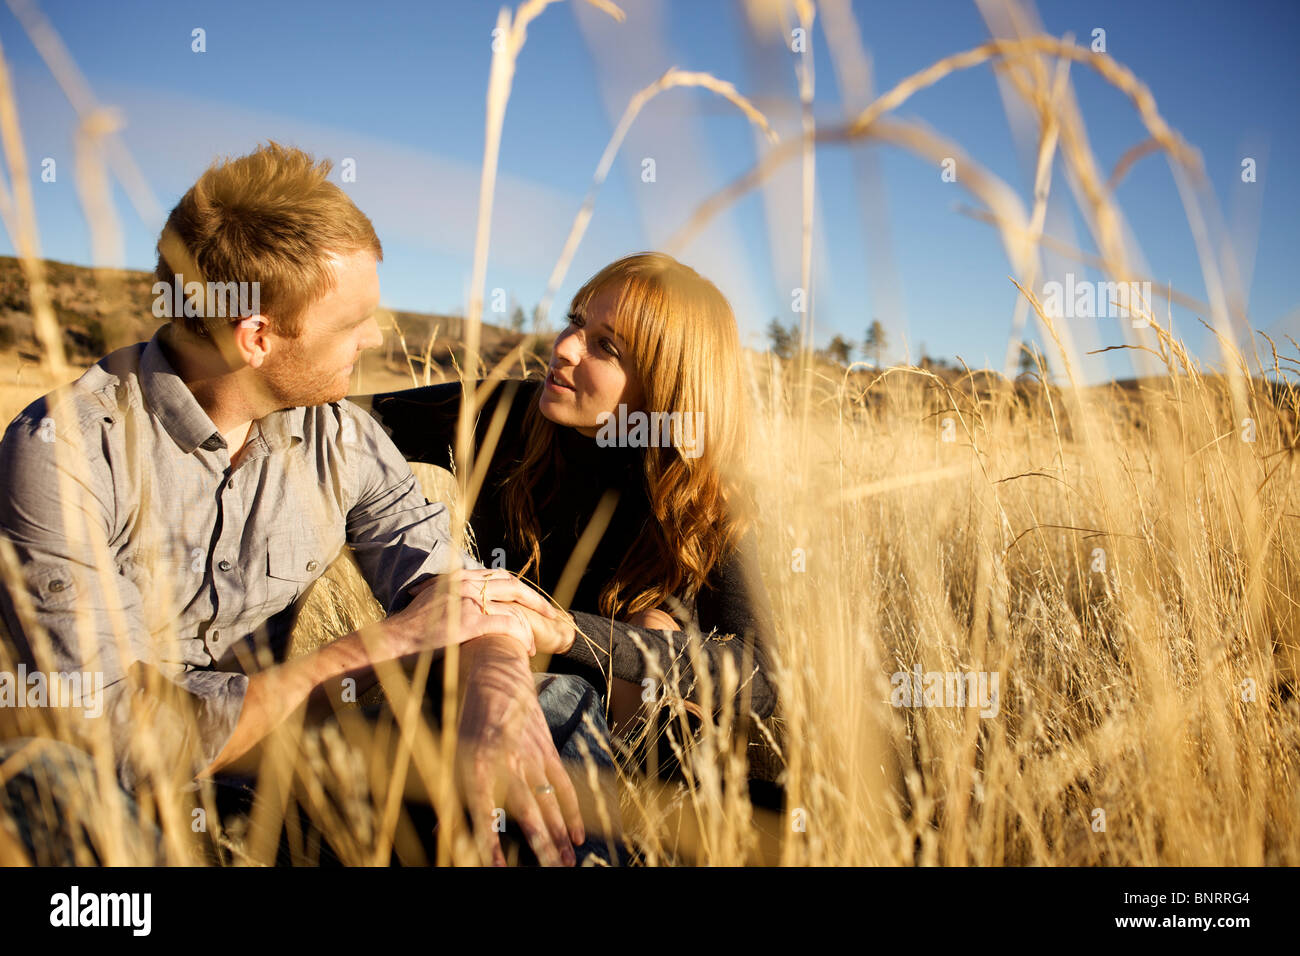 Couple sitting on the ground of an open field look at each other and smile. - Stock Image